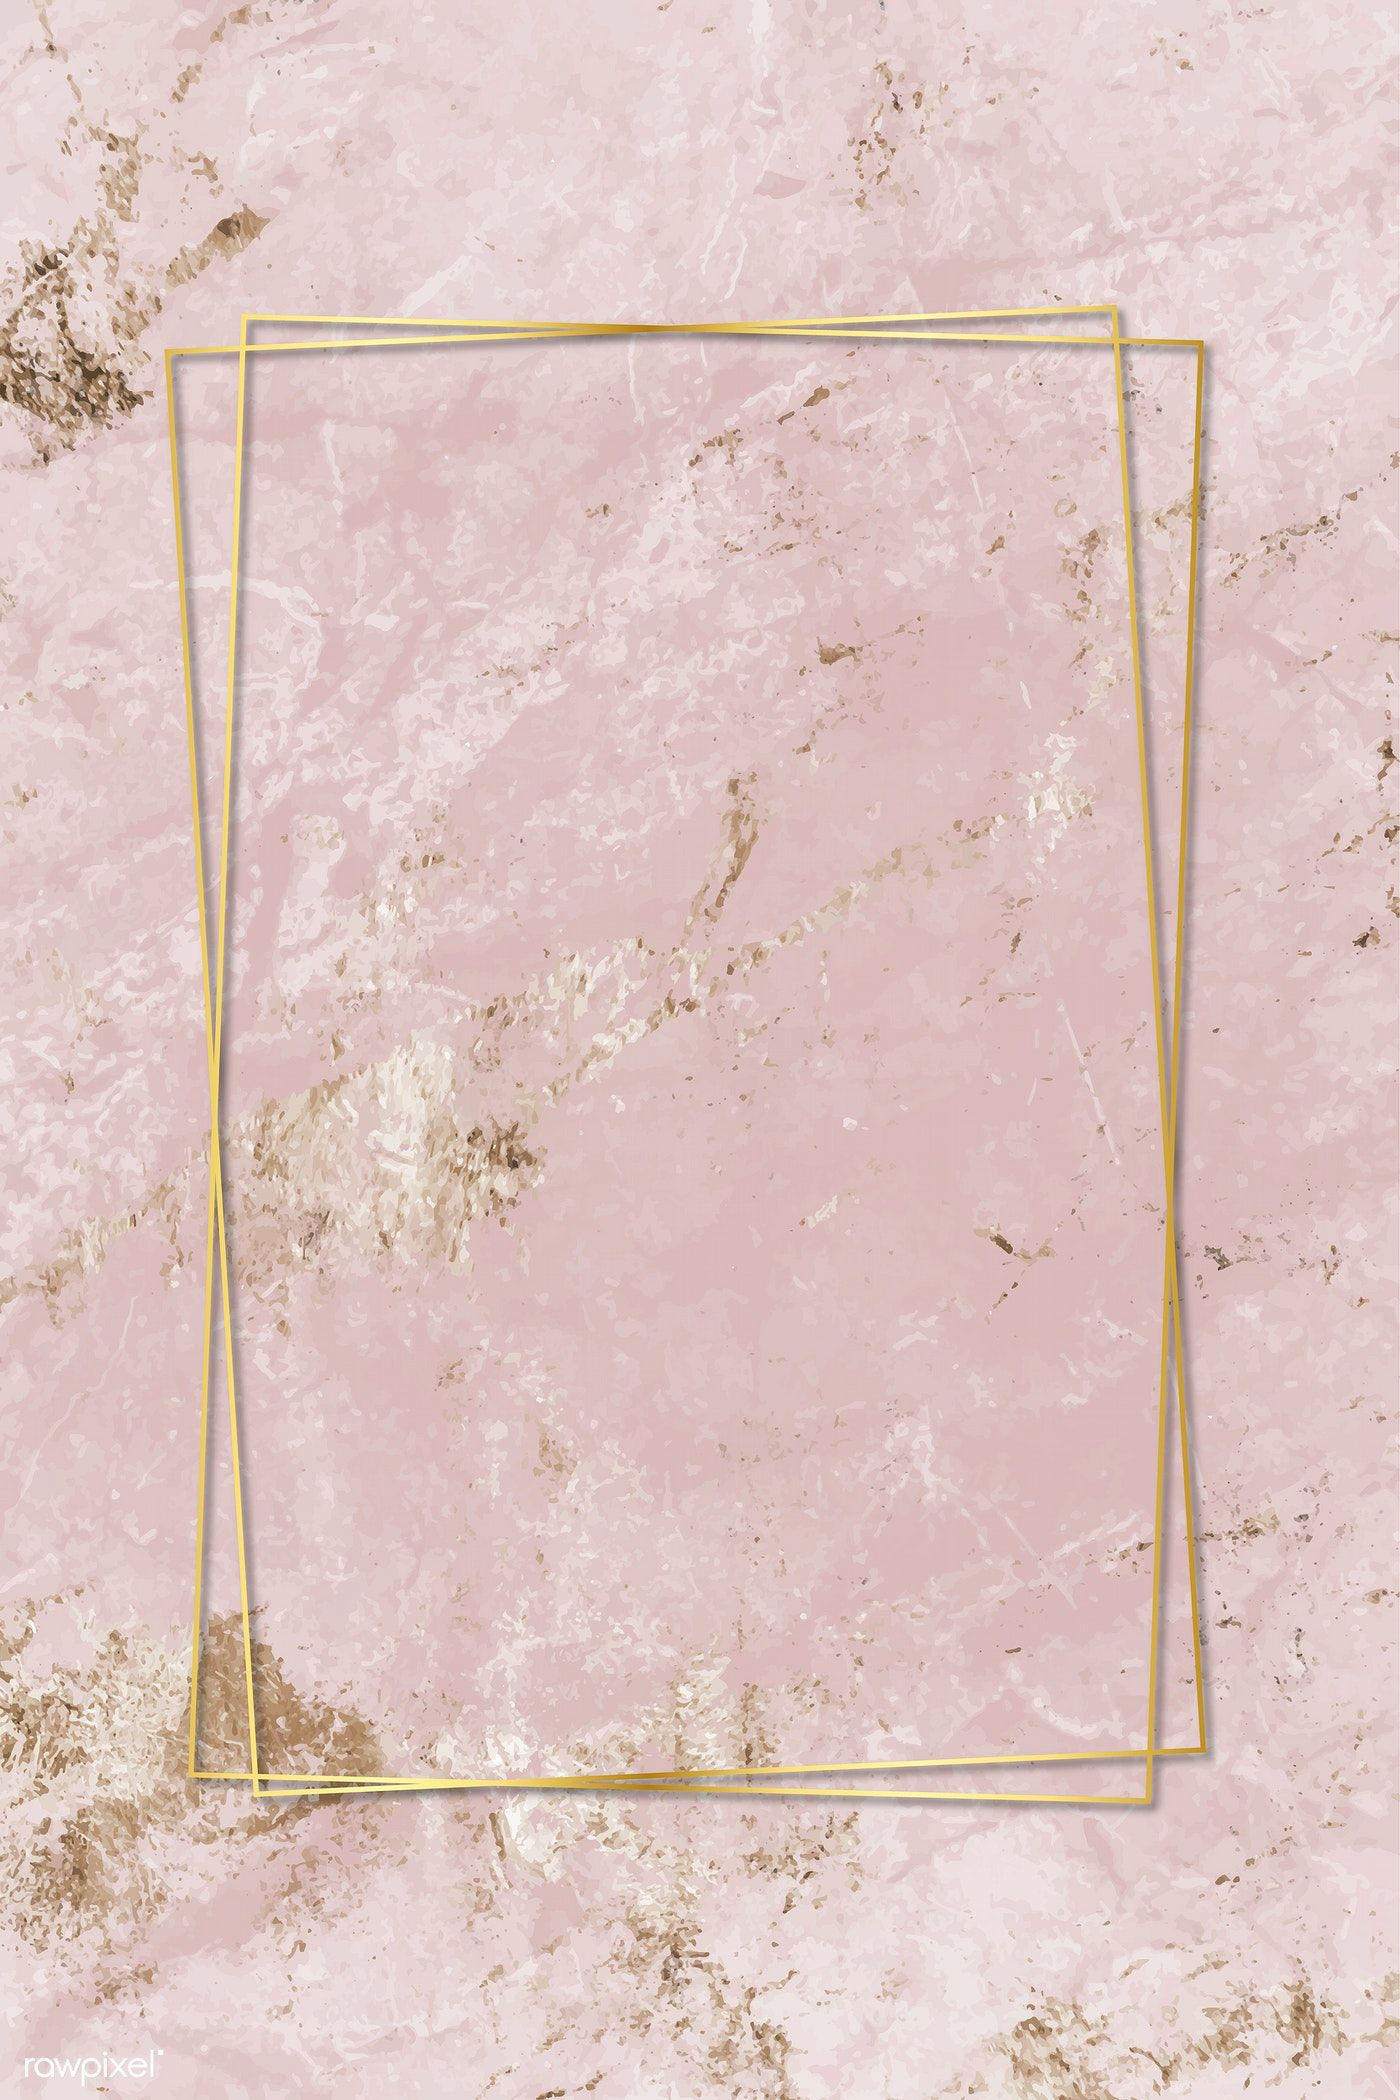 Pink And Gold Marble Textured Background Vector Free Image By Rawpixel Com Eyeeyeview In 2020 Pink Marble Background Pink And Gold Background Textured Background